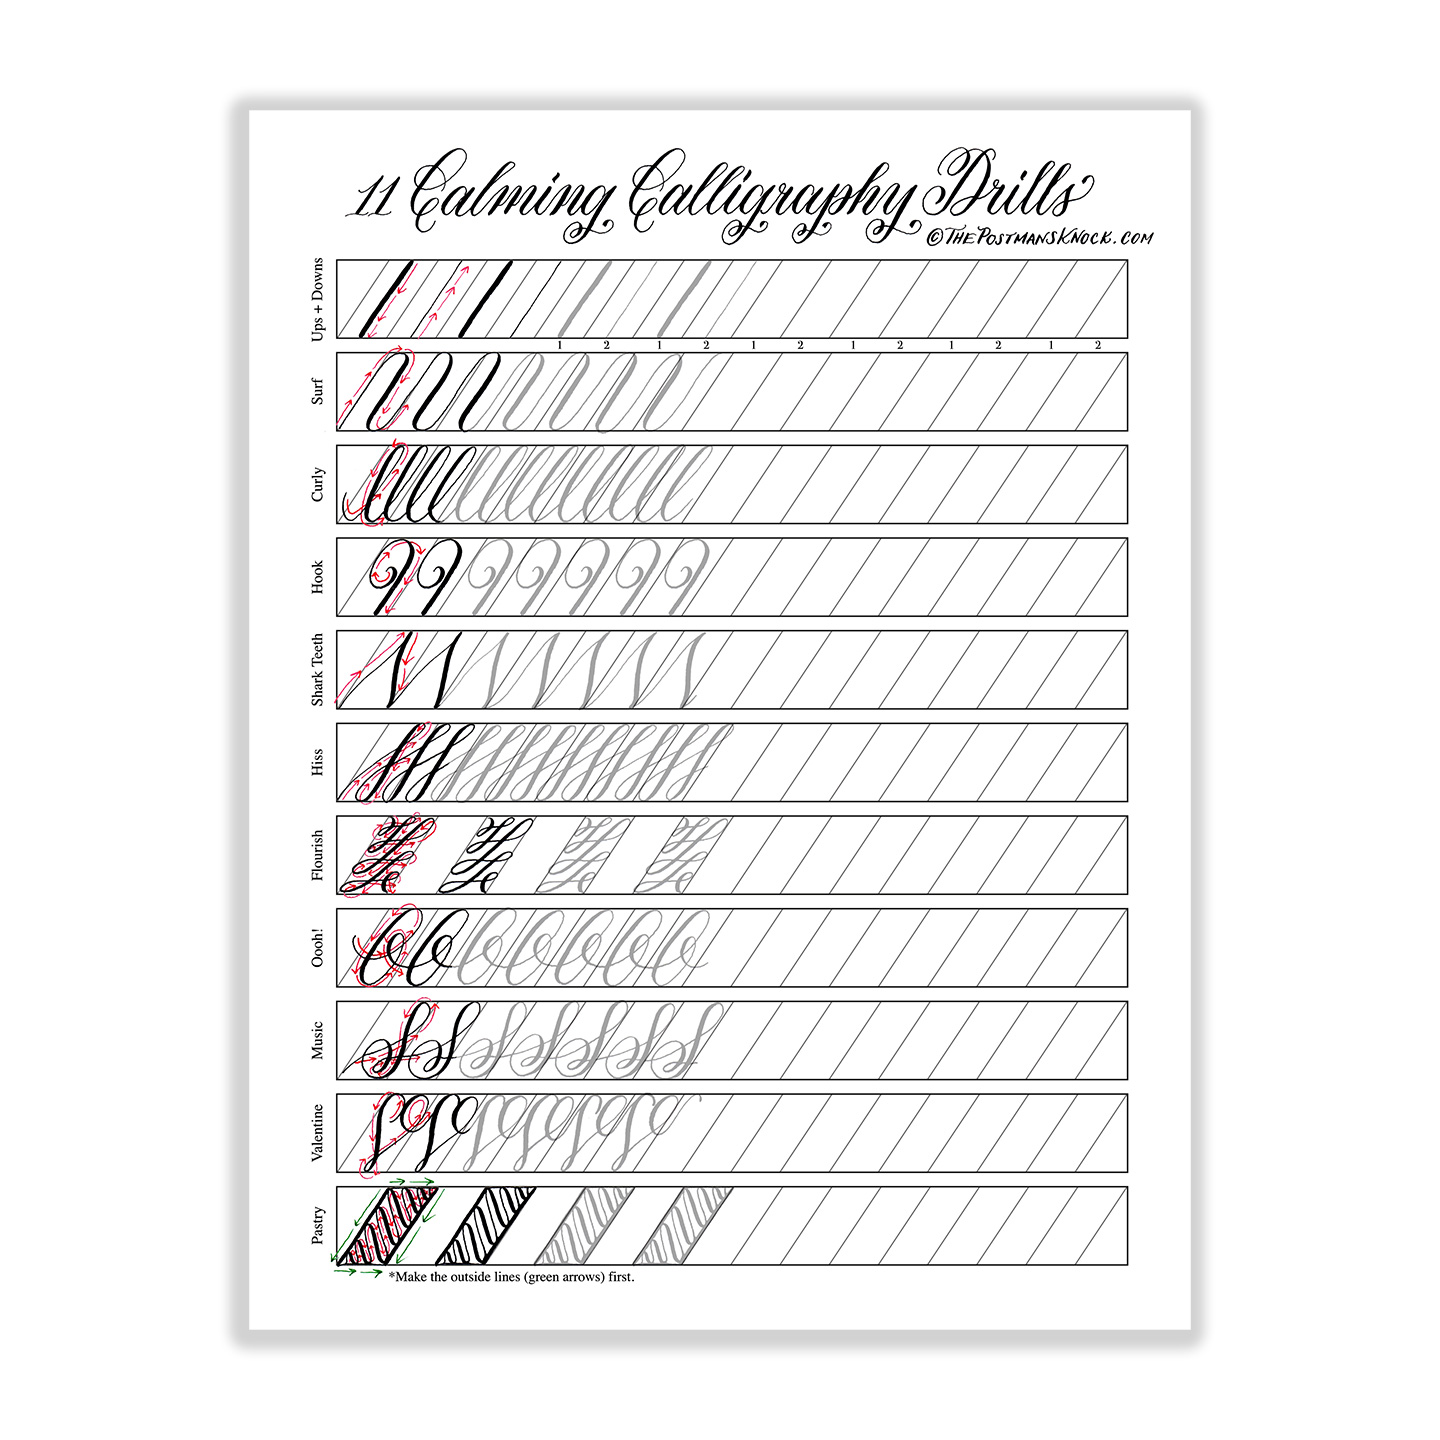 graphic relating to Calligraphy Printable referred to as 11 Enjoyable Calligraphy Drills Printable